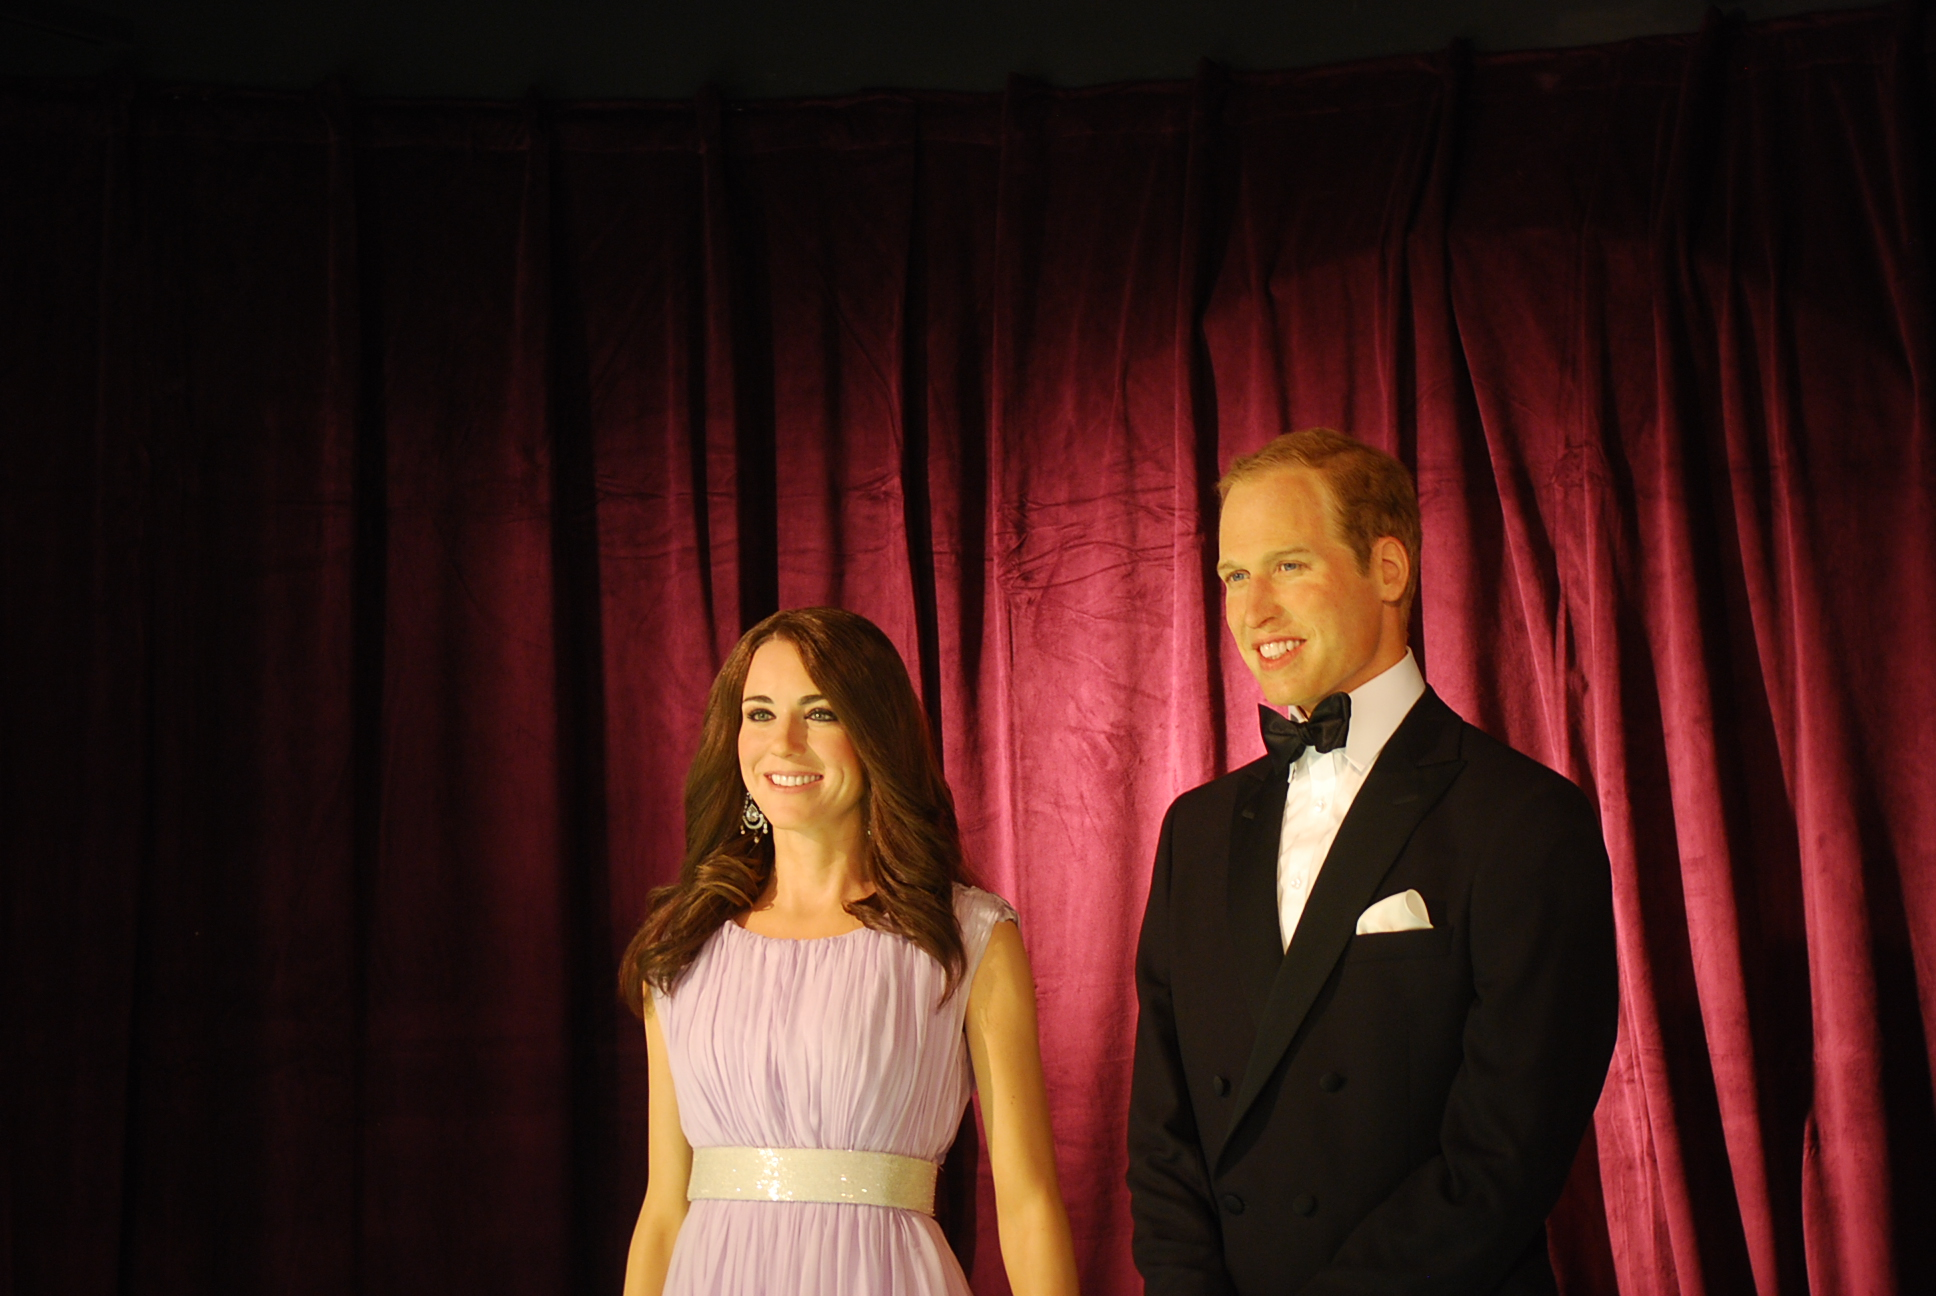 Britain's Royal Couple in Nation's Capital, in Wax